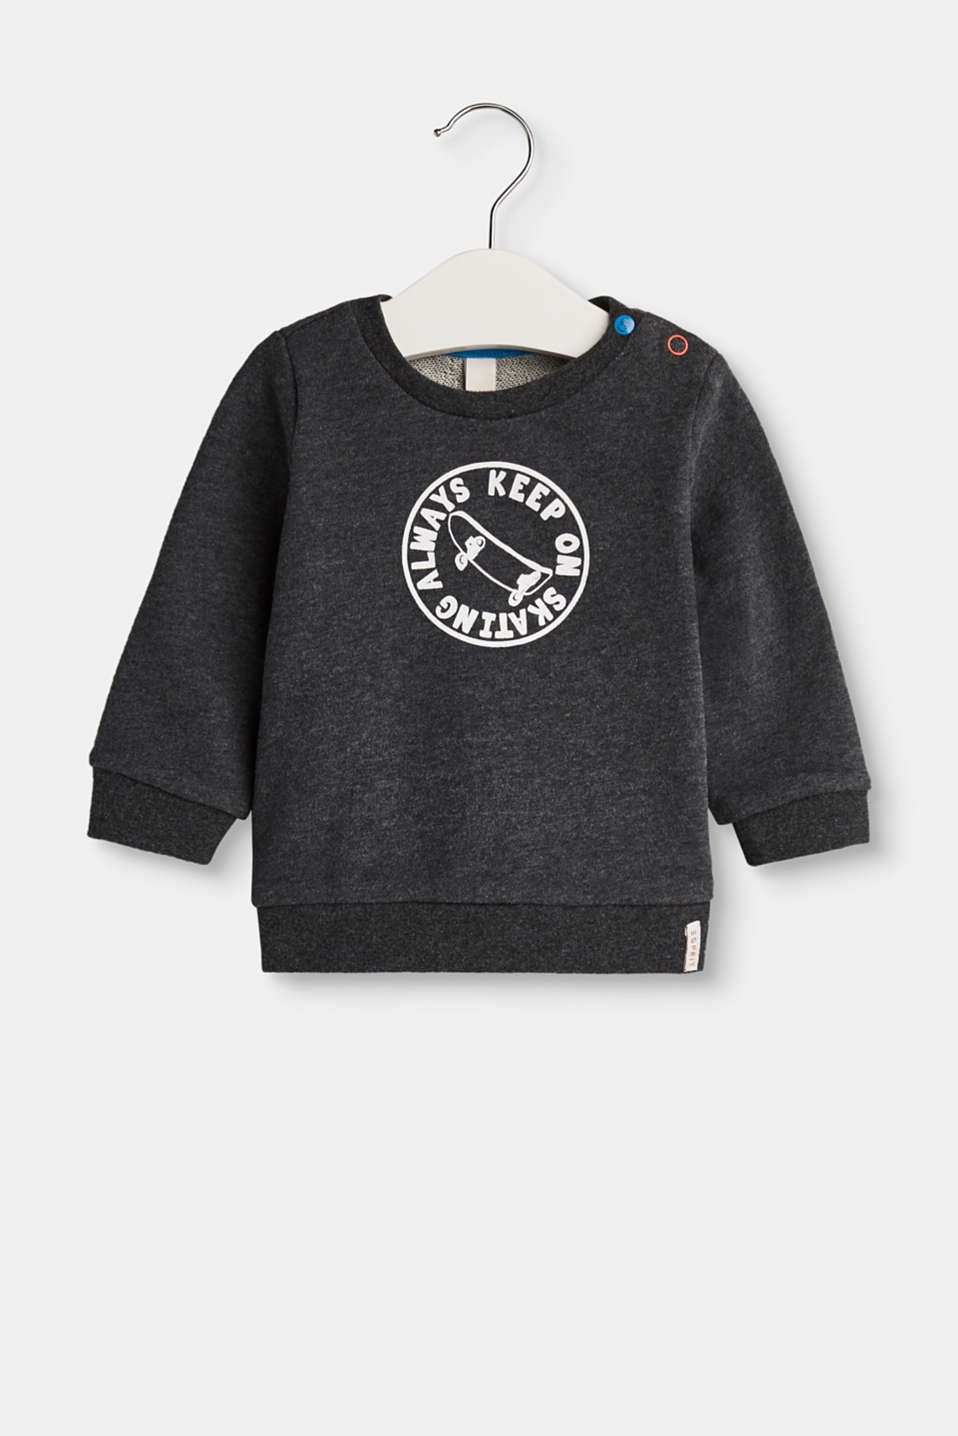 With a cool skater print! This sweet print sweatshirt is made of pure cotton.